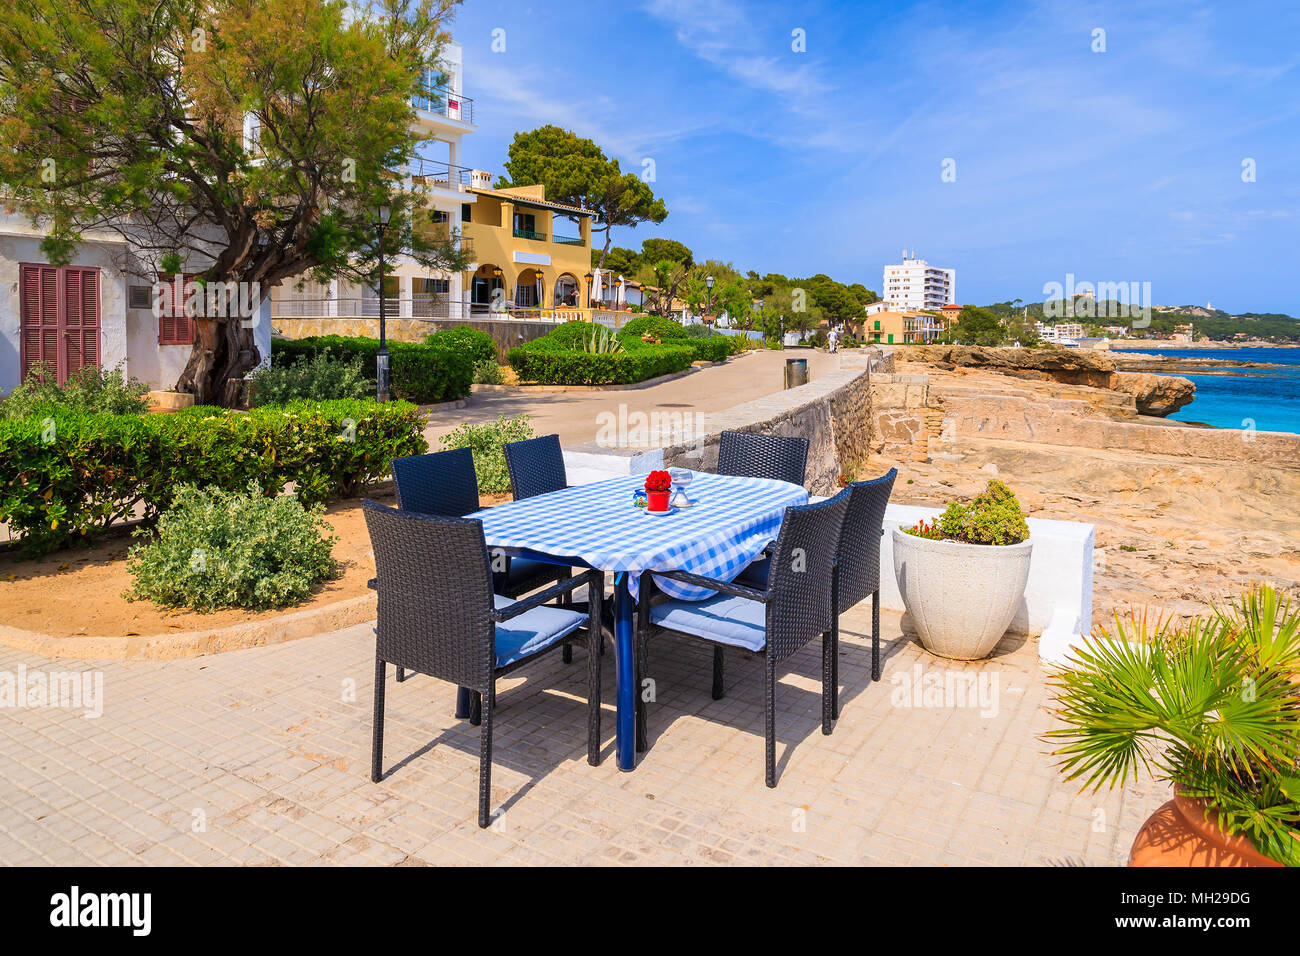 Restaurant table on seashore in small village near Cala Ratjada, Majorca island, Spain - Stock Image